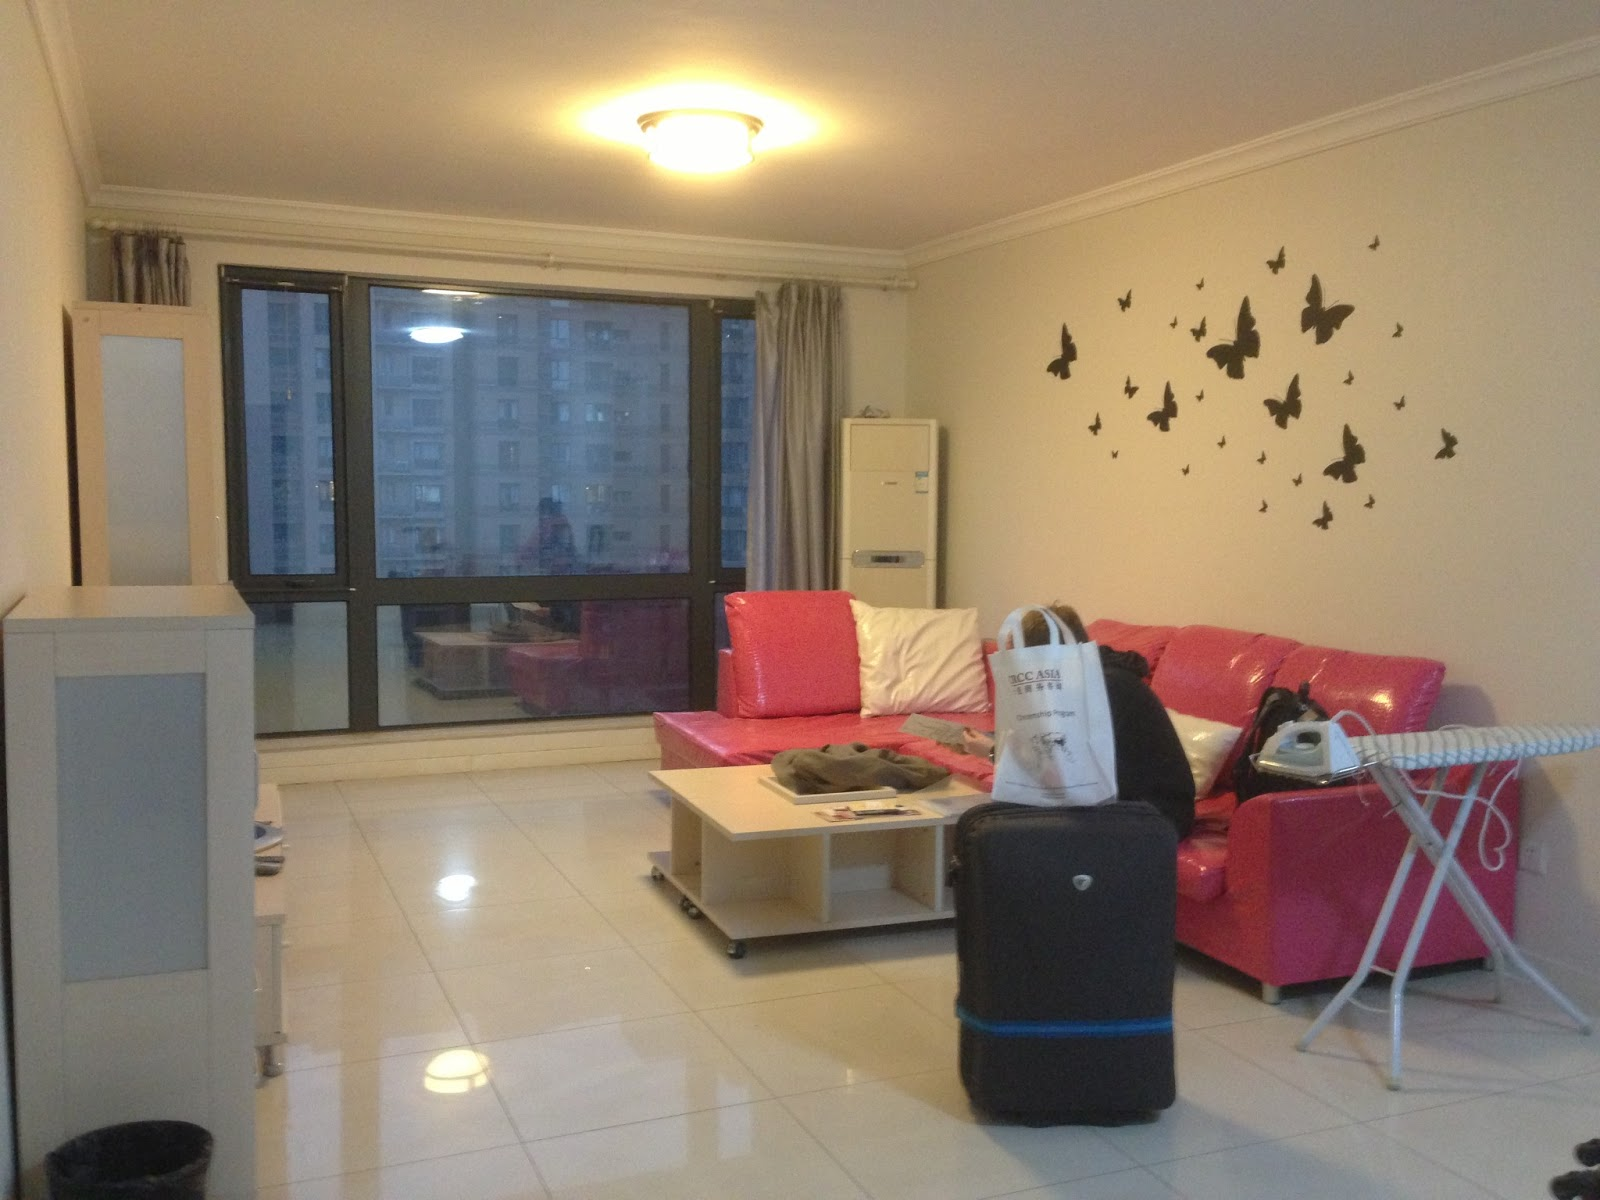 Apartment with CRCC Asia, Beijing, China